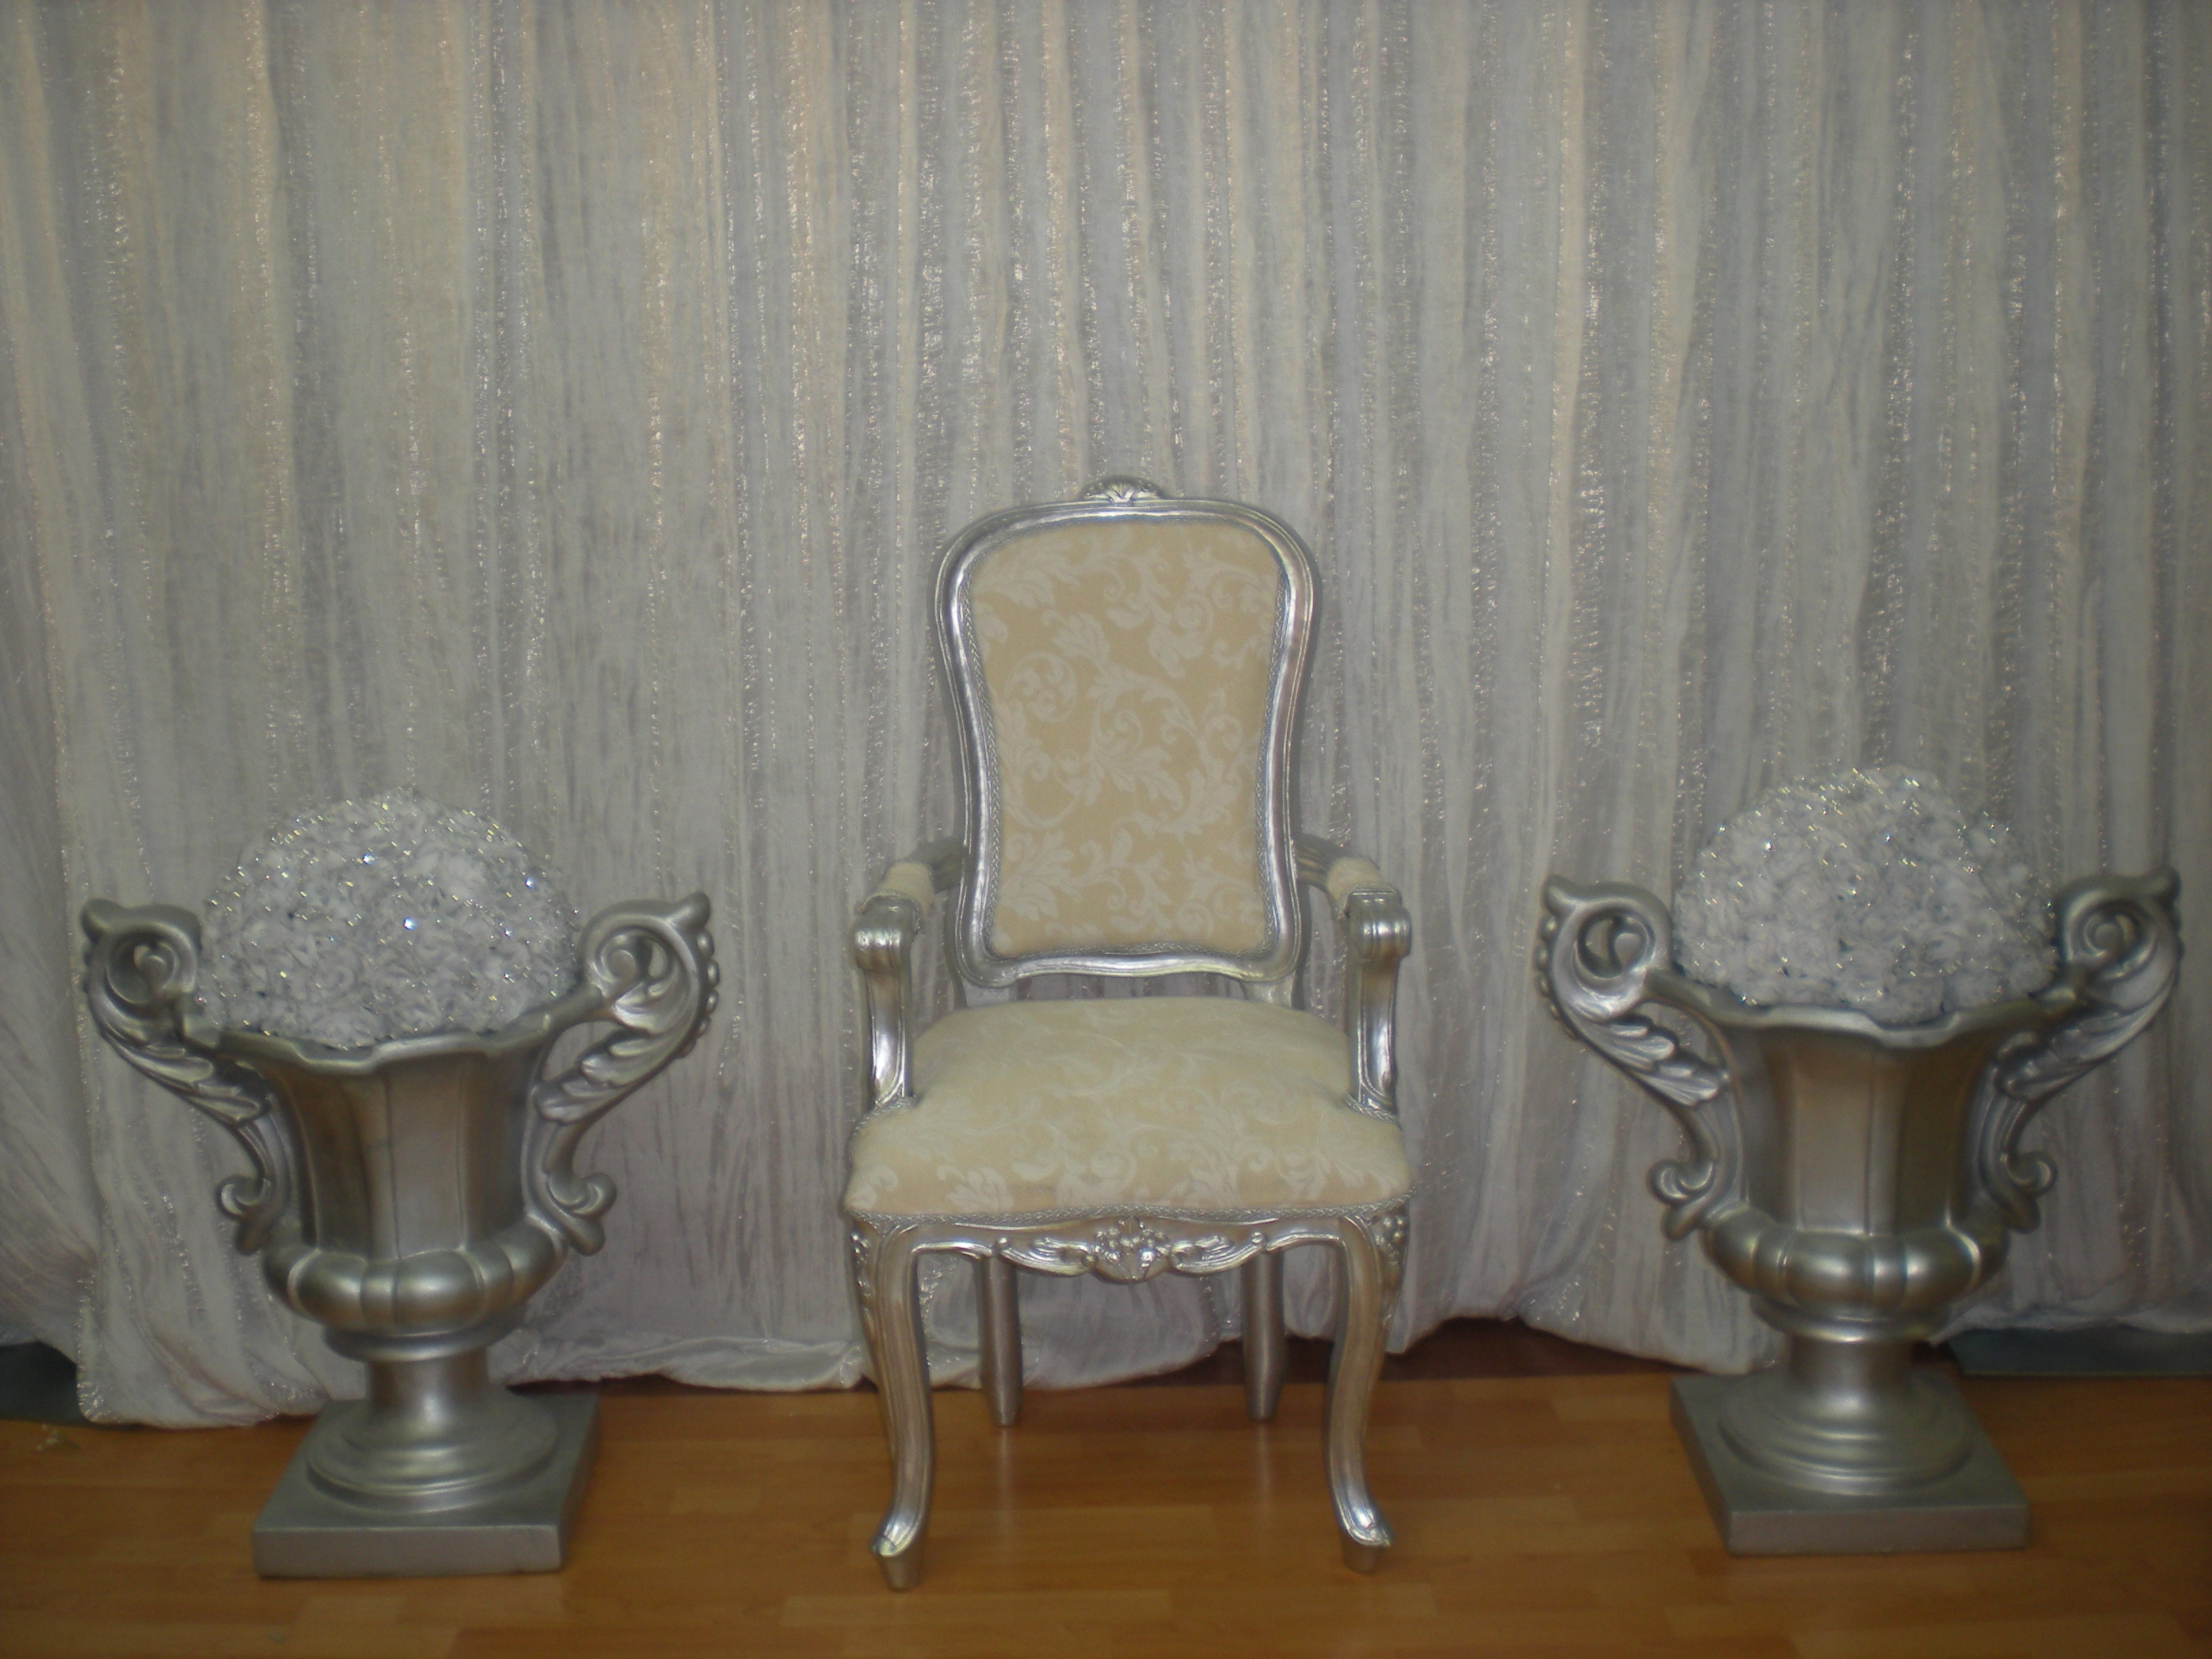 Wedding Chair Rentals Fancy Wedding Linen Rentals Table Linen For Weddings Home